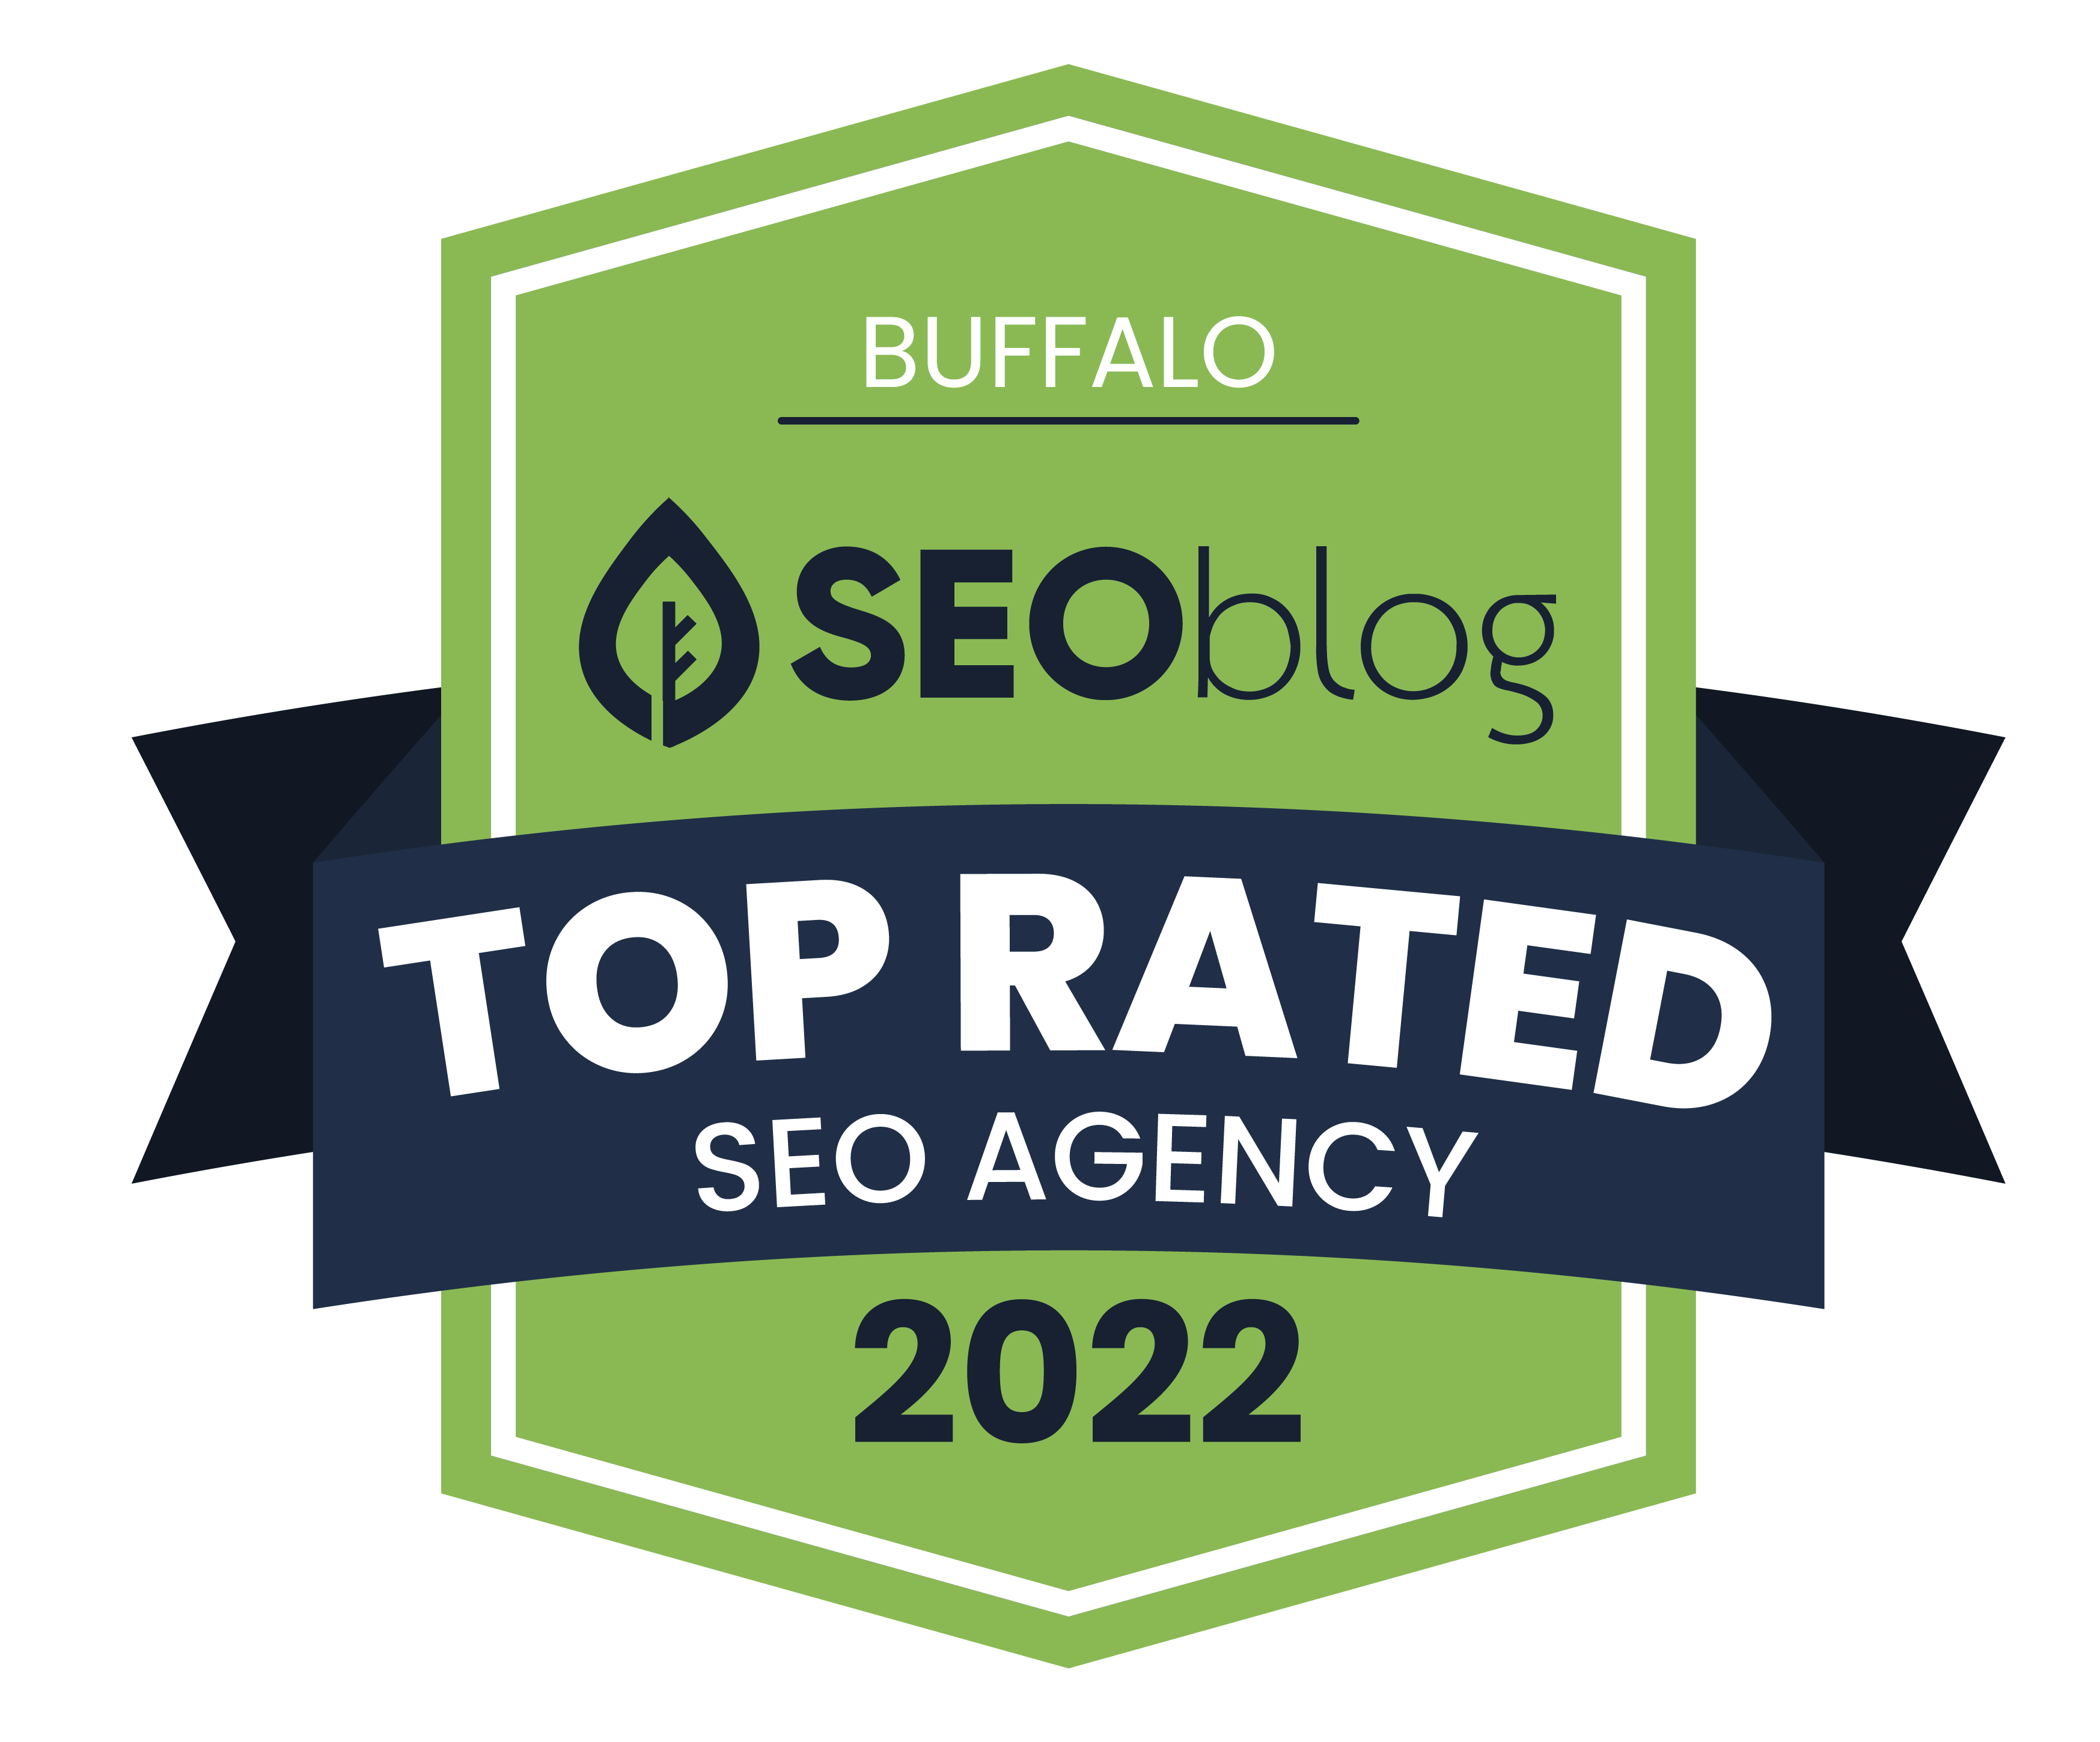 Buffalo SEO Agency